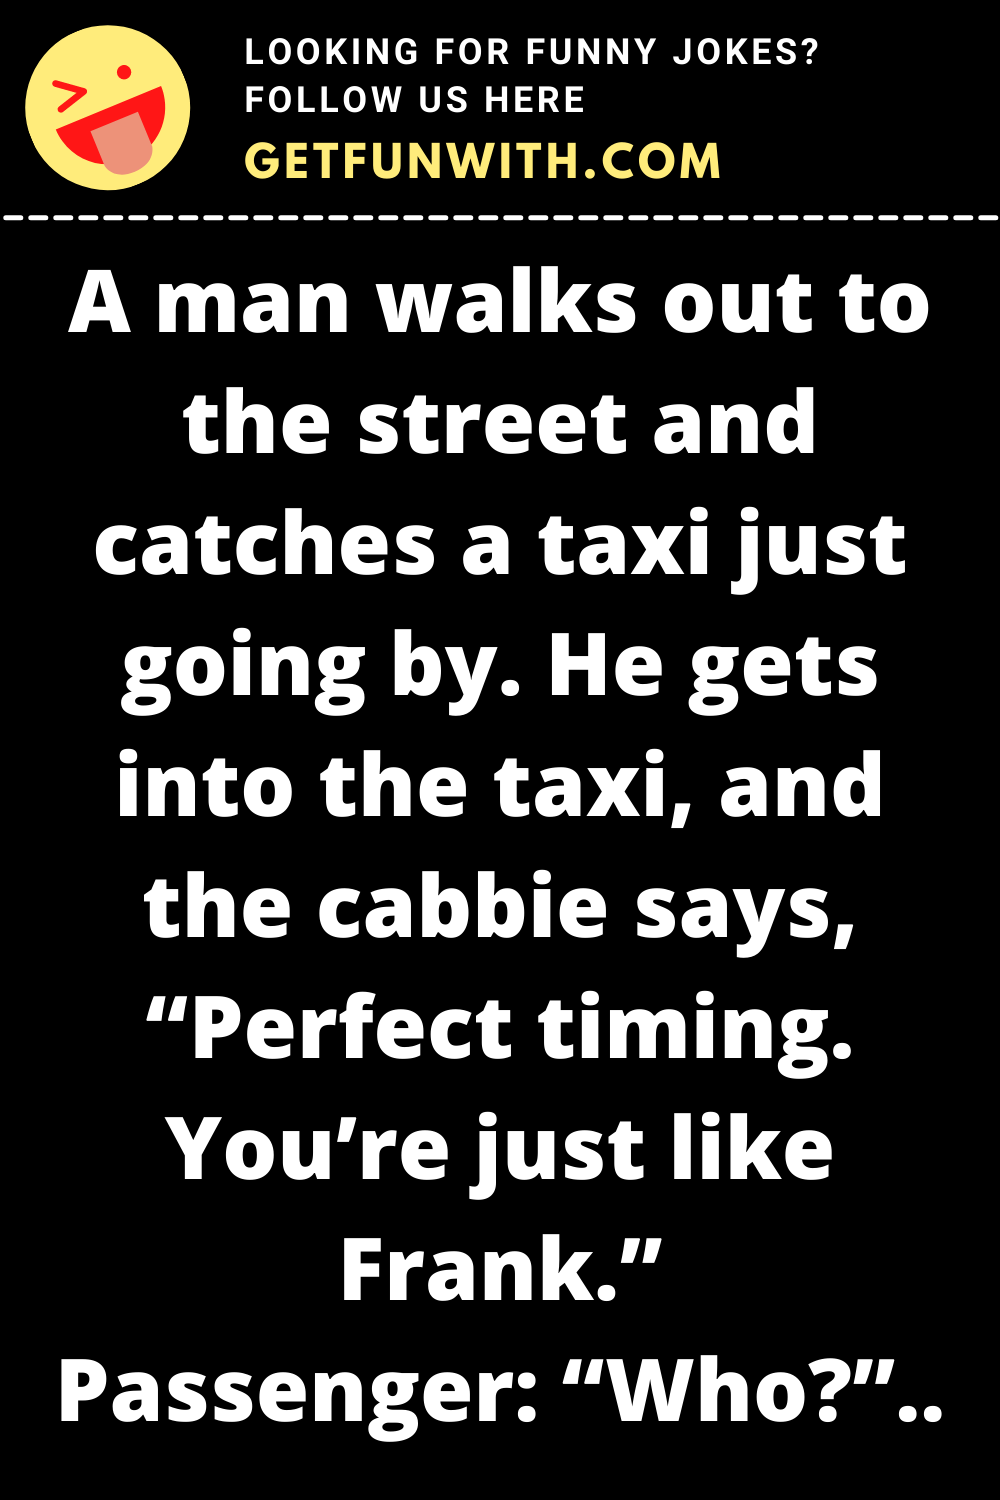 """A man walks out to the street and catches a taxi just going by. He gets into the taxi, and the cabbie says, """"Perfect timing. You're just like Frank."""""""